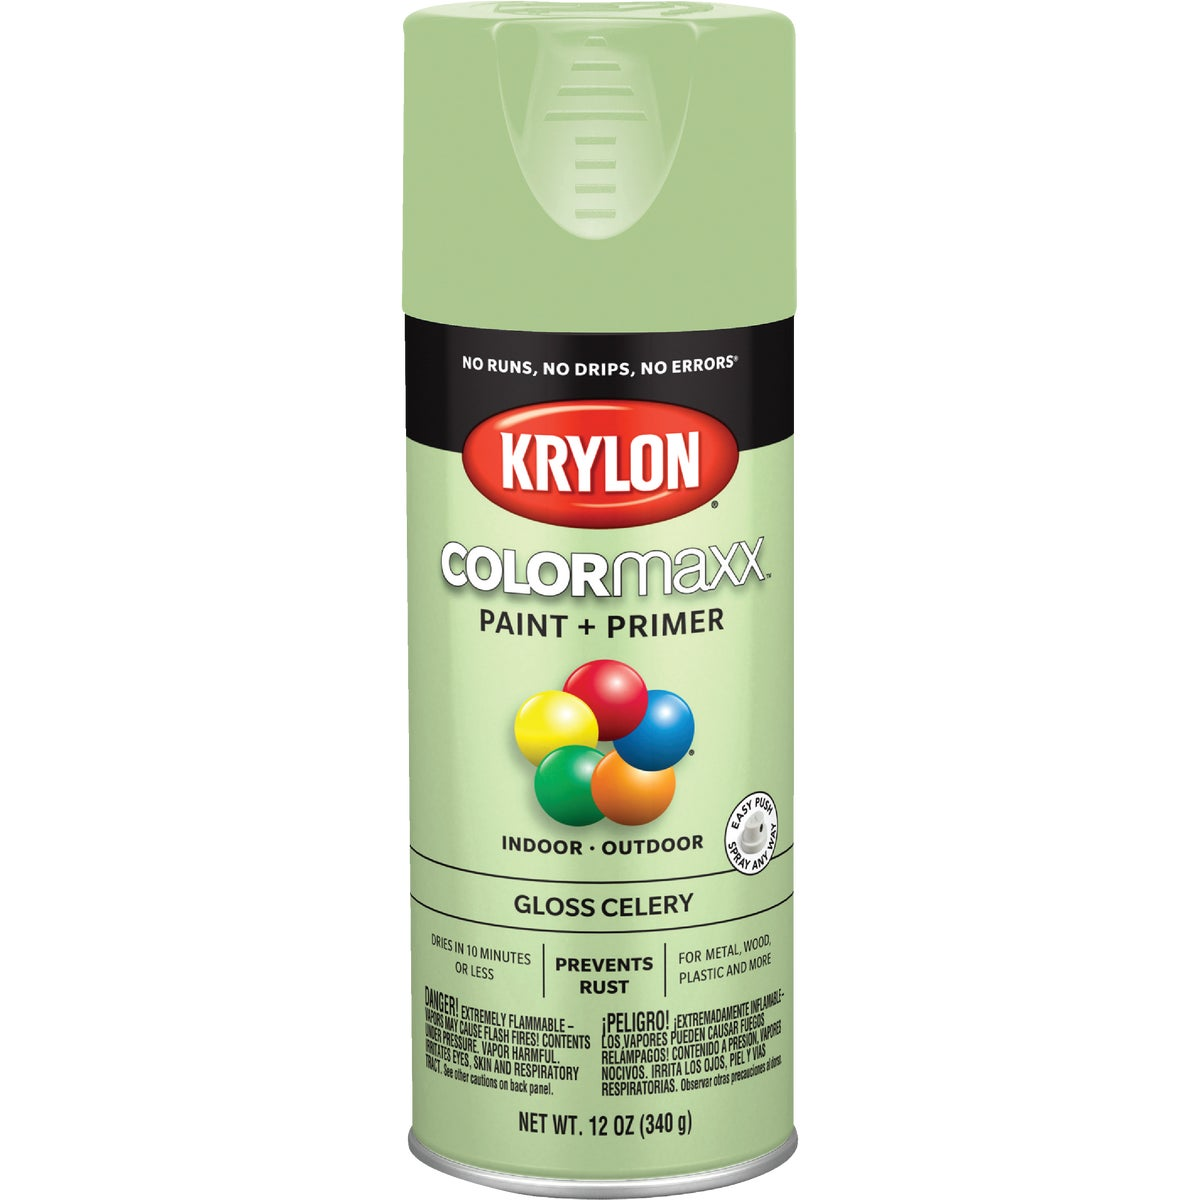 GLOSS CELERY SPRAY PAINT - 53543 by Krylon/consumer Div